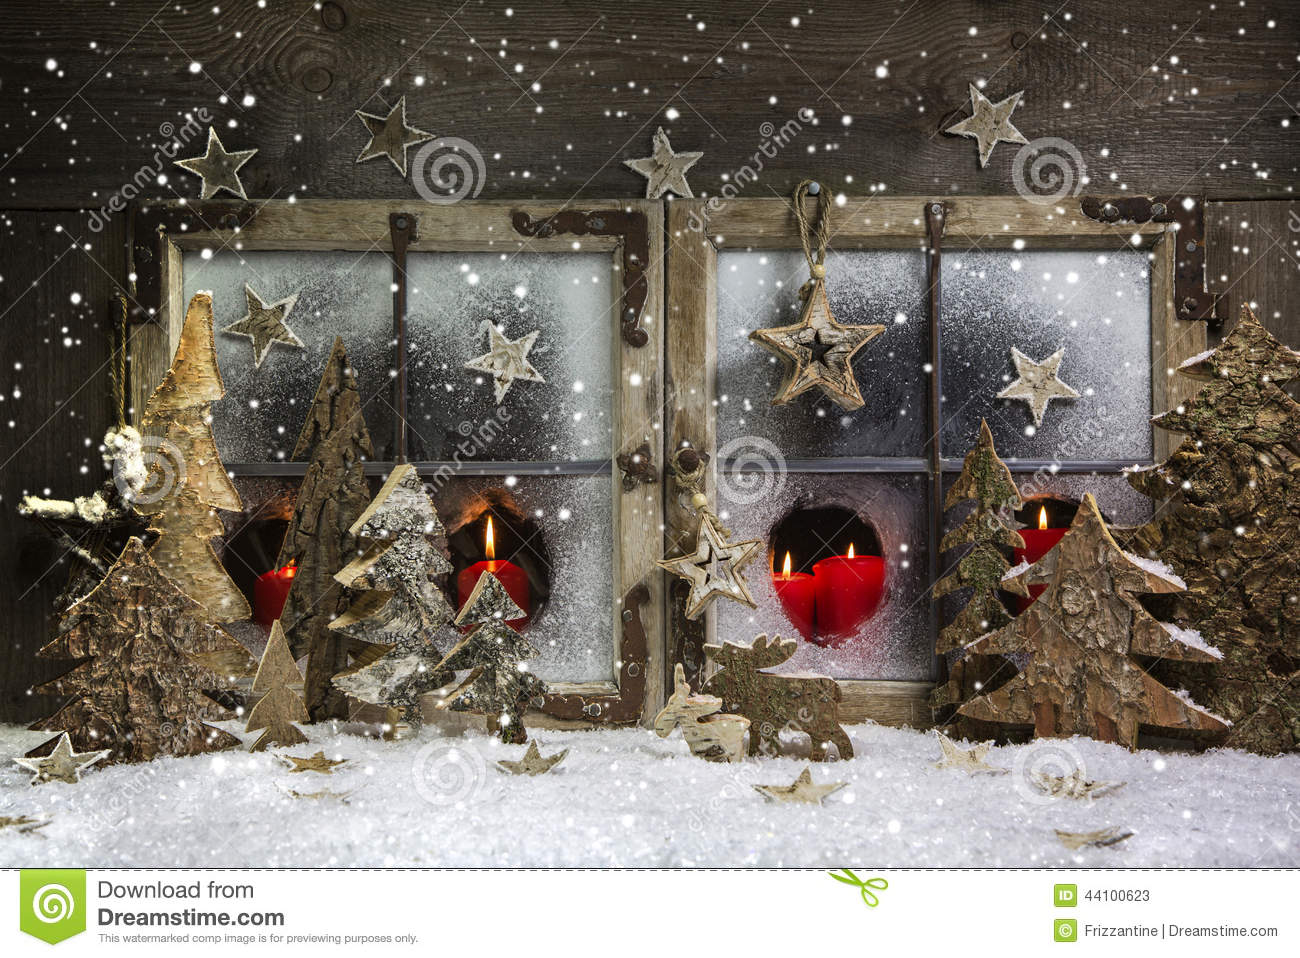 mood and atmosphere christmas window decoration in red with woo stock image image of. Black Bedroom Furniture Sets. Home Design Ideas